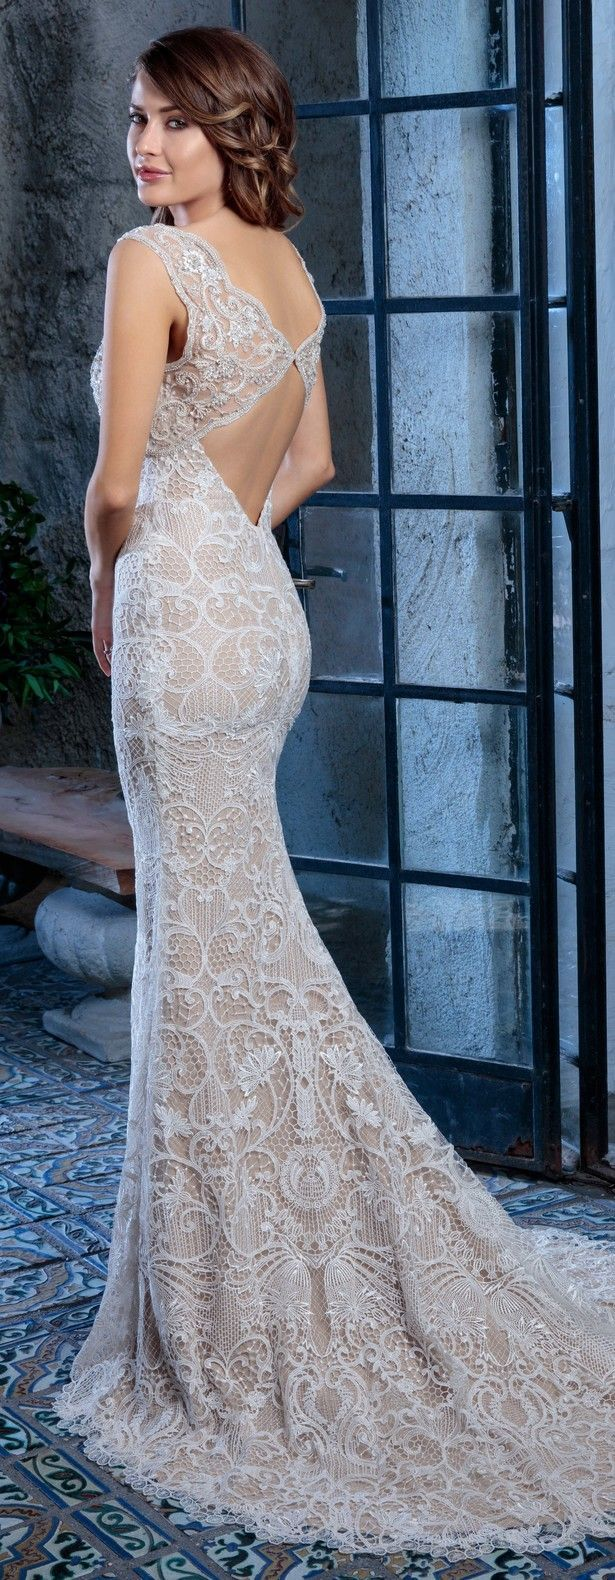 11 best DEMETRIOS Editorials images on Pinterest | 30 years, Bridal ...